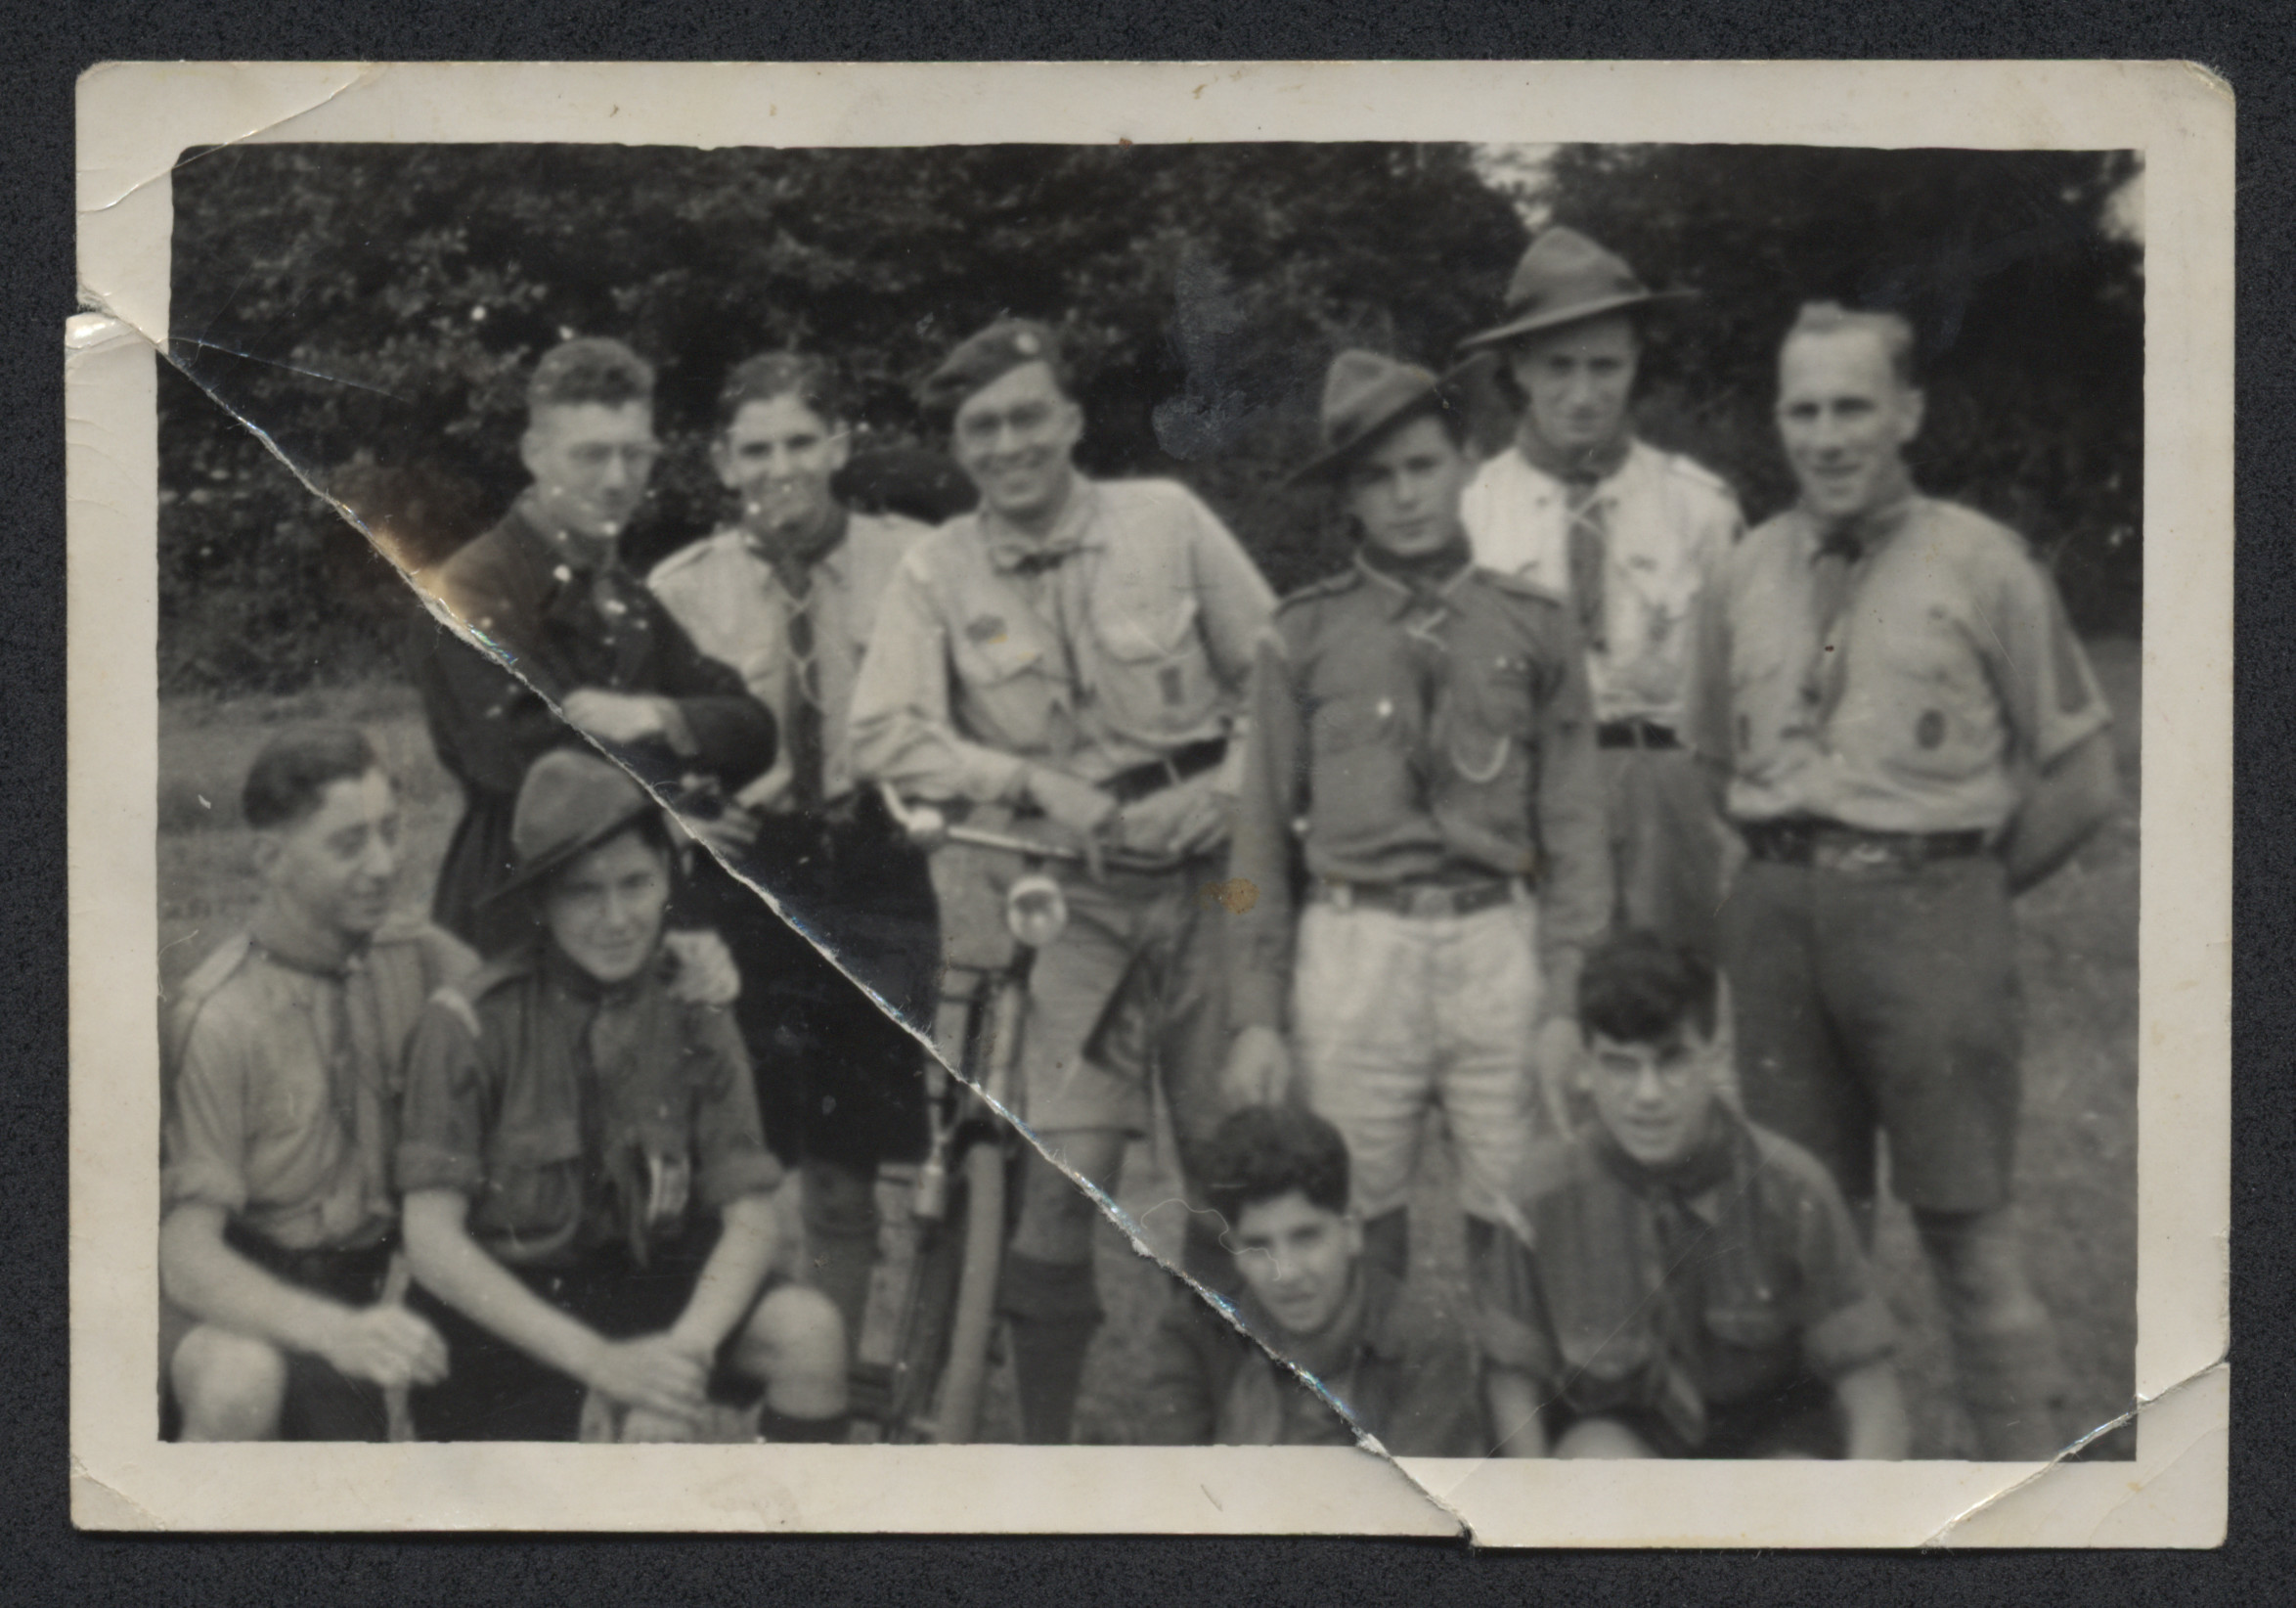 Jewish scouts pose for a group photograph.  Among those pictured is Louis Moses (front row, far left).